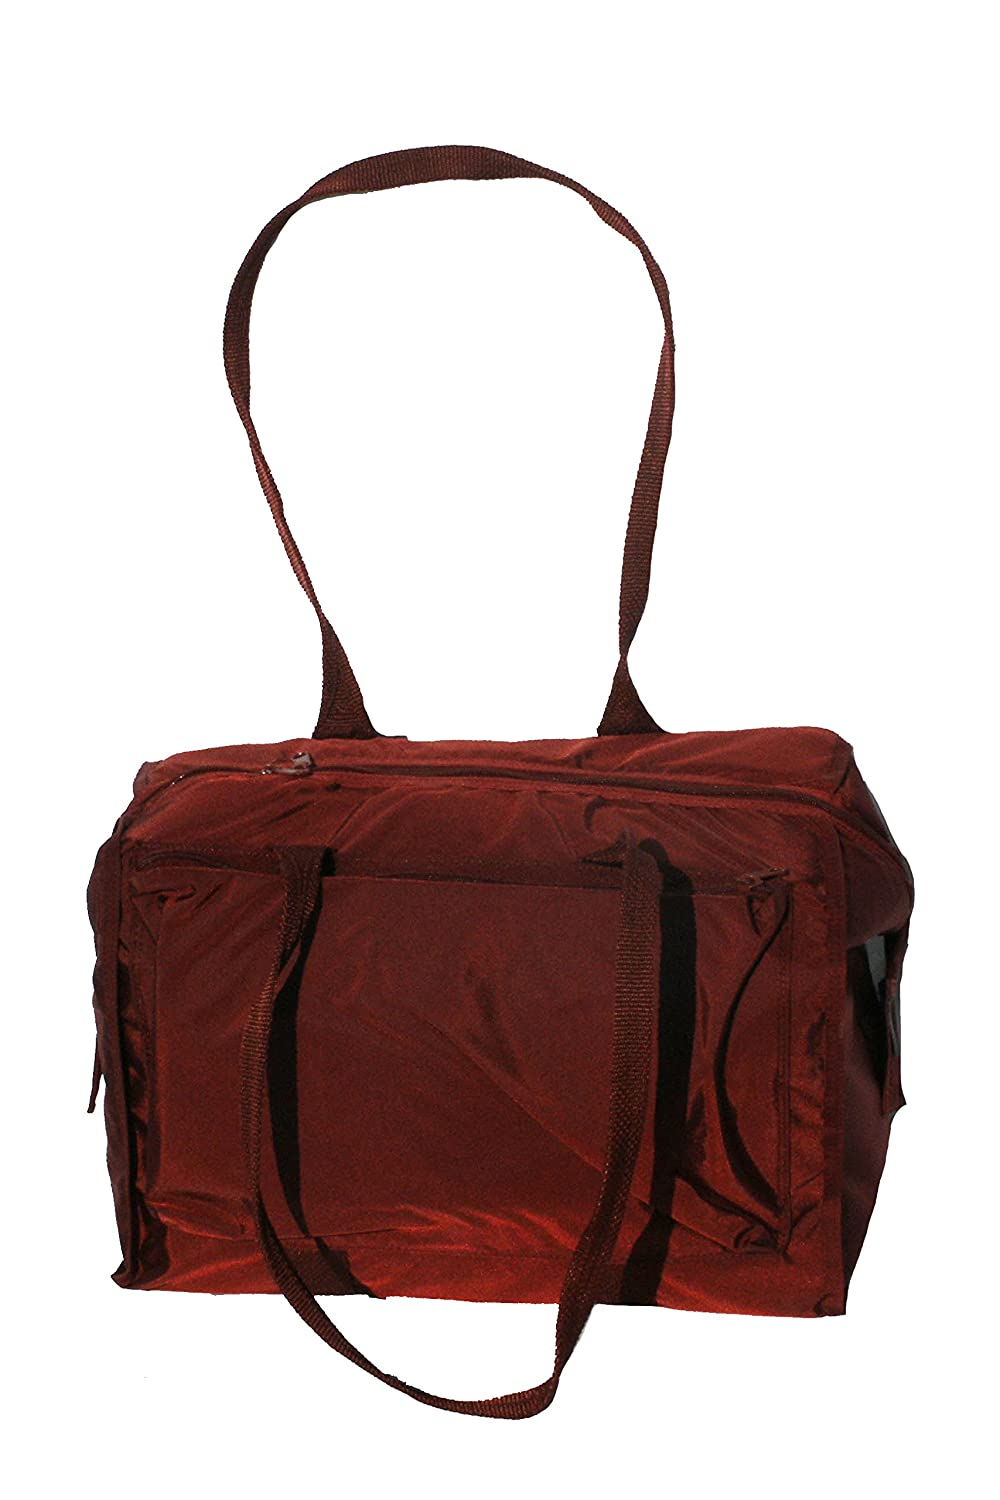 Wide Mouth Bag Maxi 16 Luggage